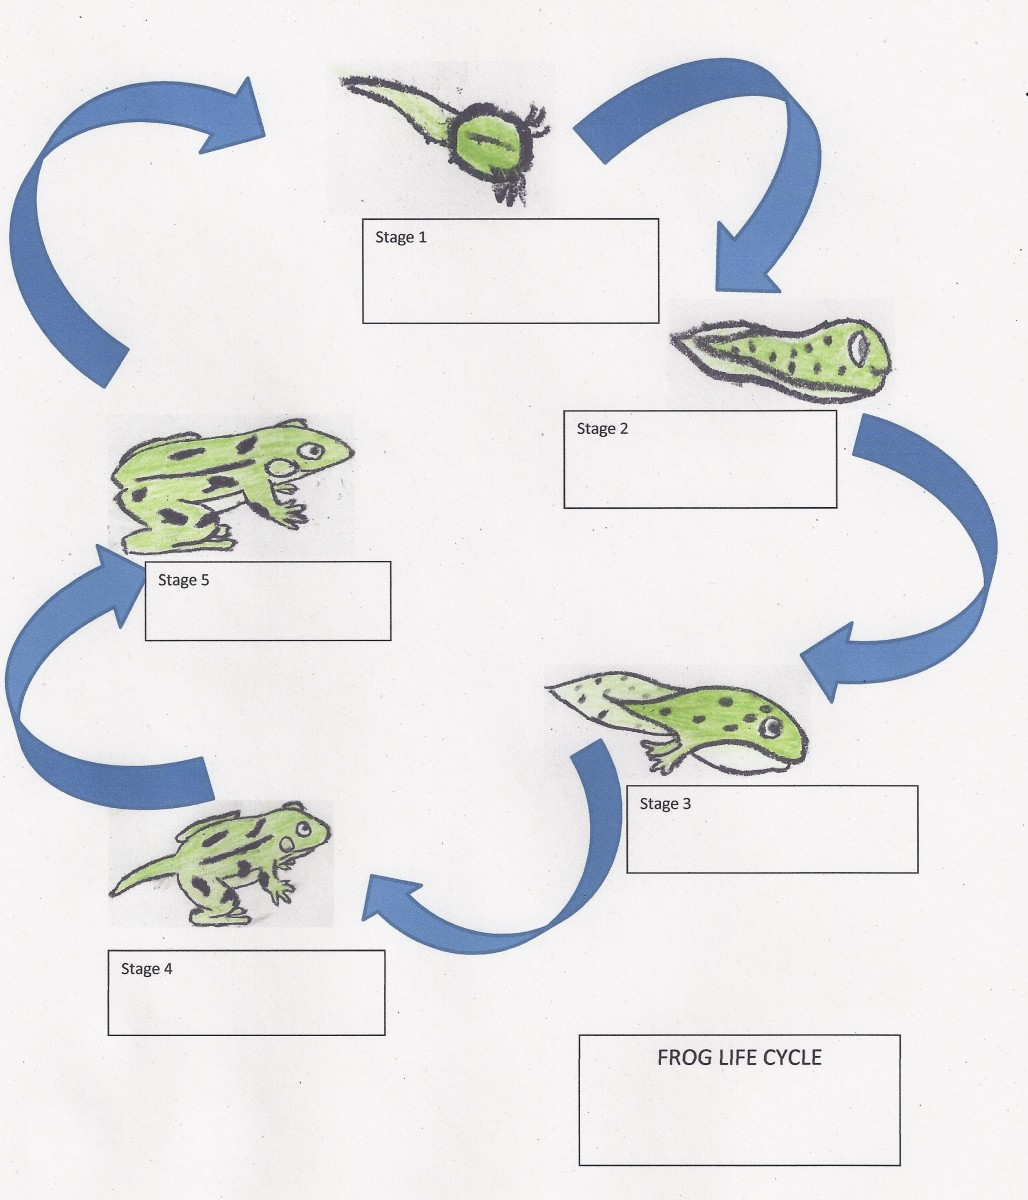 Life Cycle Of A Frog Lesson Plan For Elementary Students